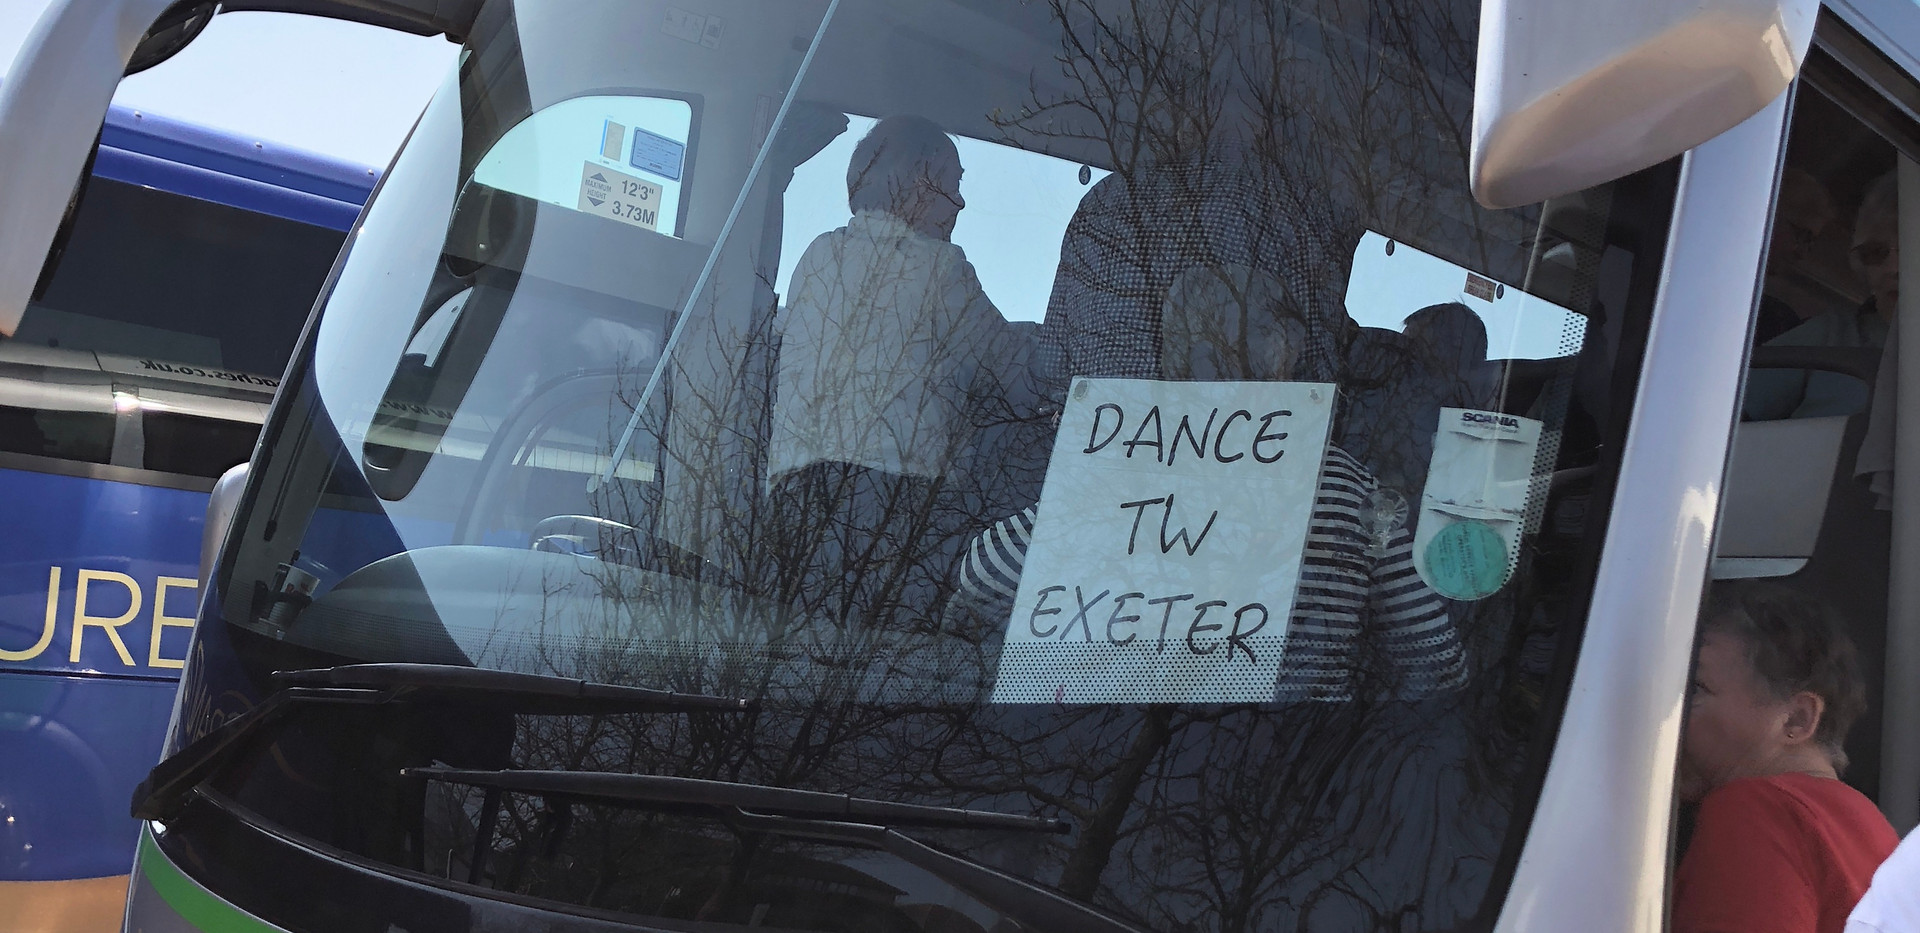 Dance TW Exeter on tour